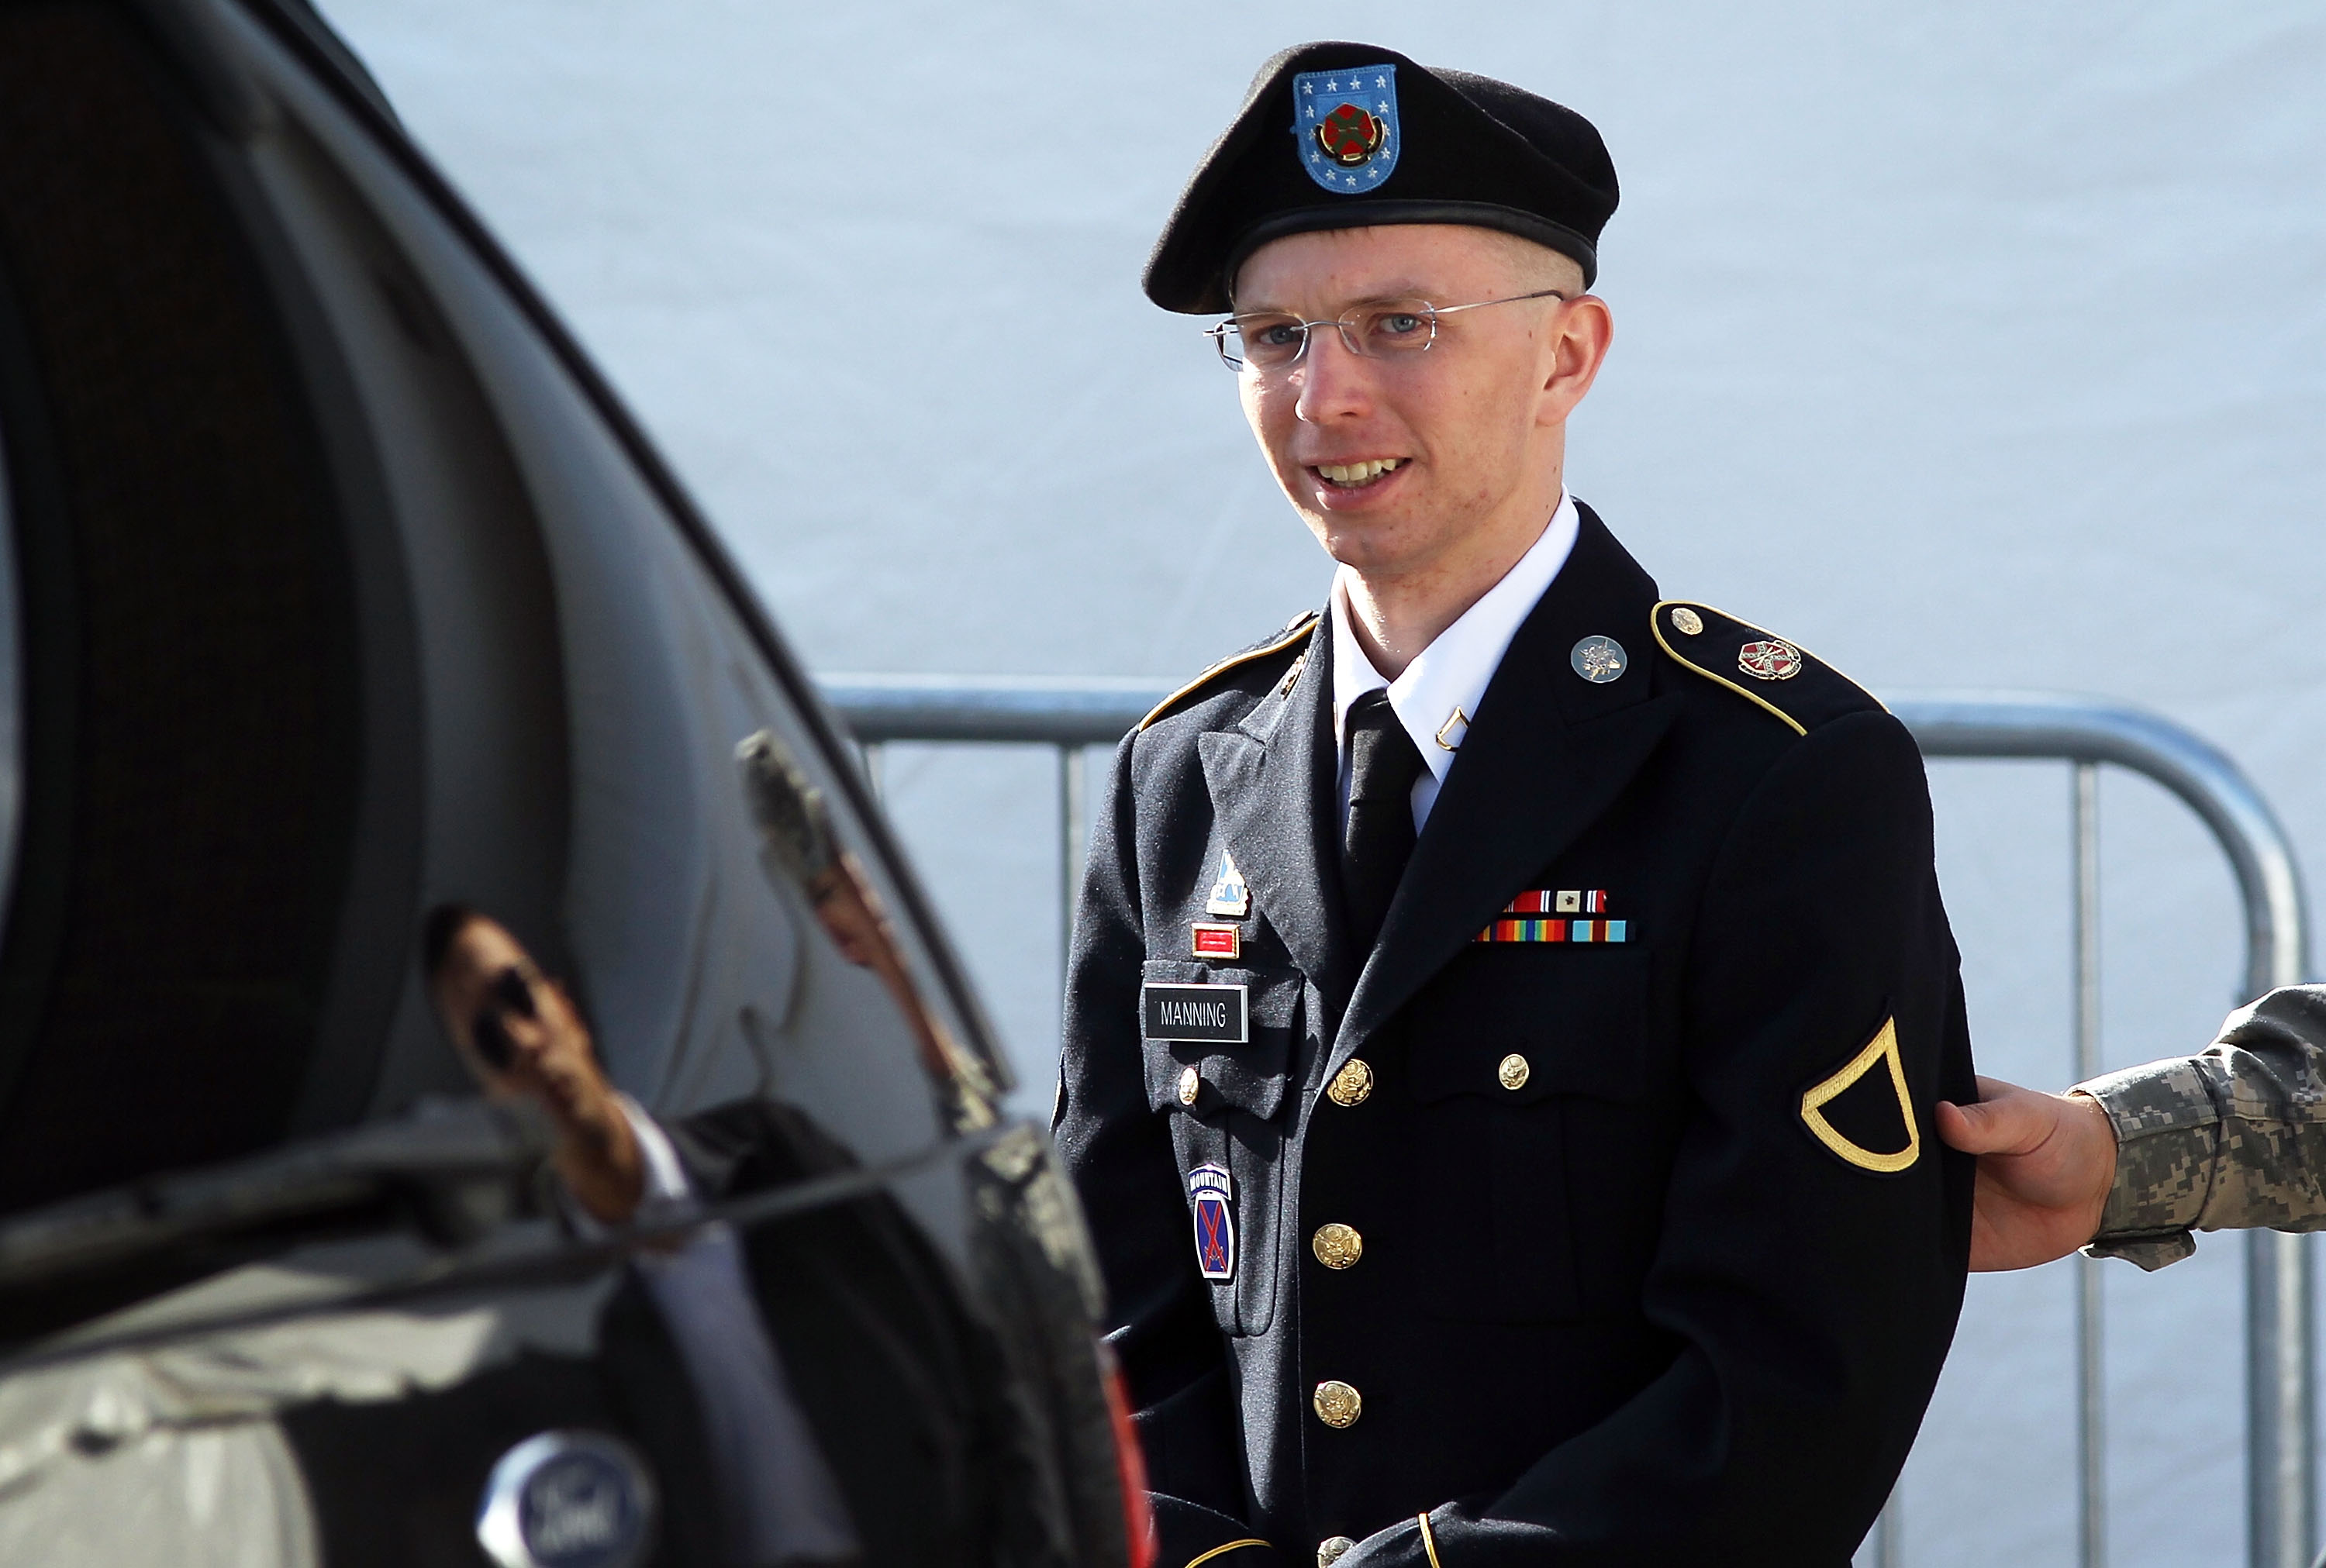 U.S. Army Private Bradley Manning is escorted as he leaves a military court at the end of the first of a three-day motion hearing June 6, 2012 in Fort Meade, Maryland.